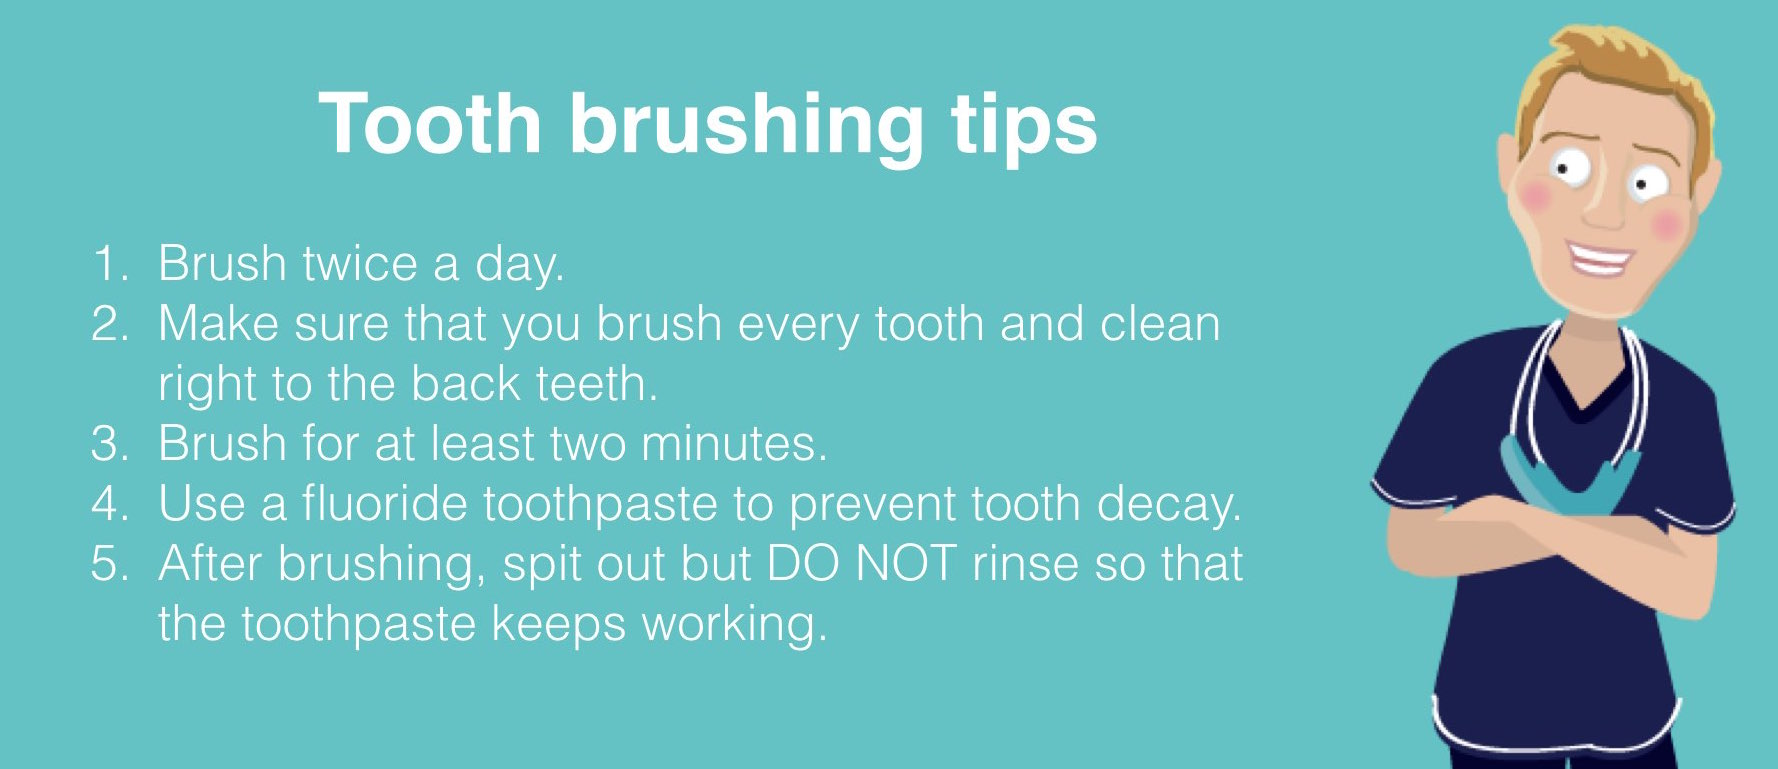 The Online Dentist tips on tooth brushing